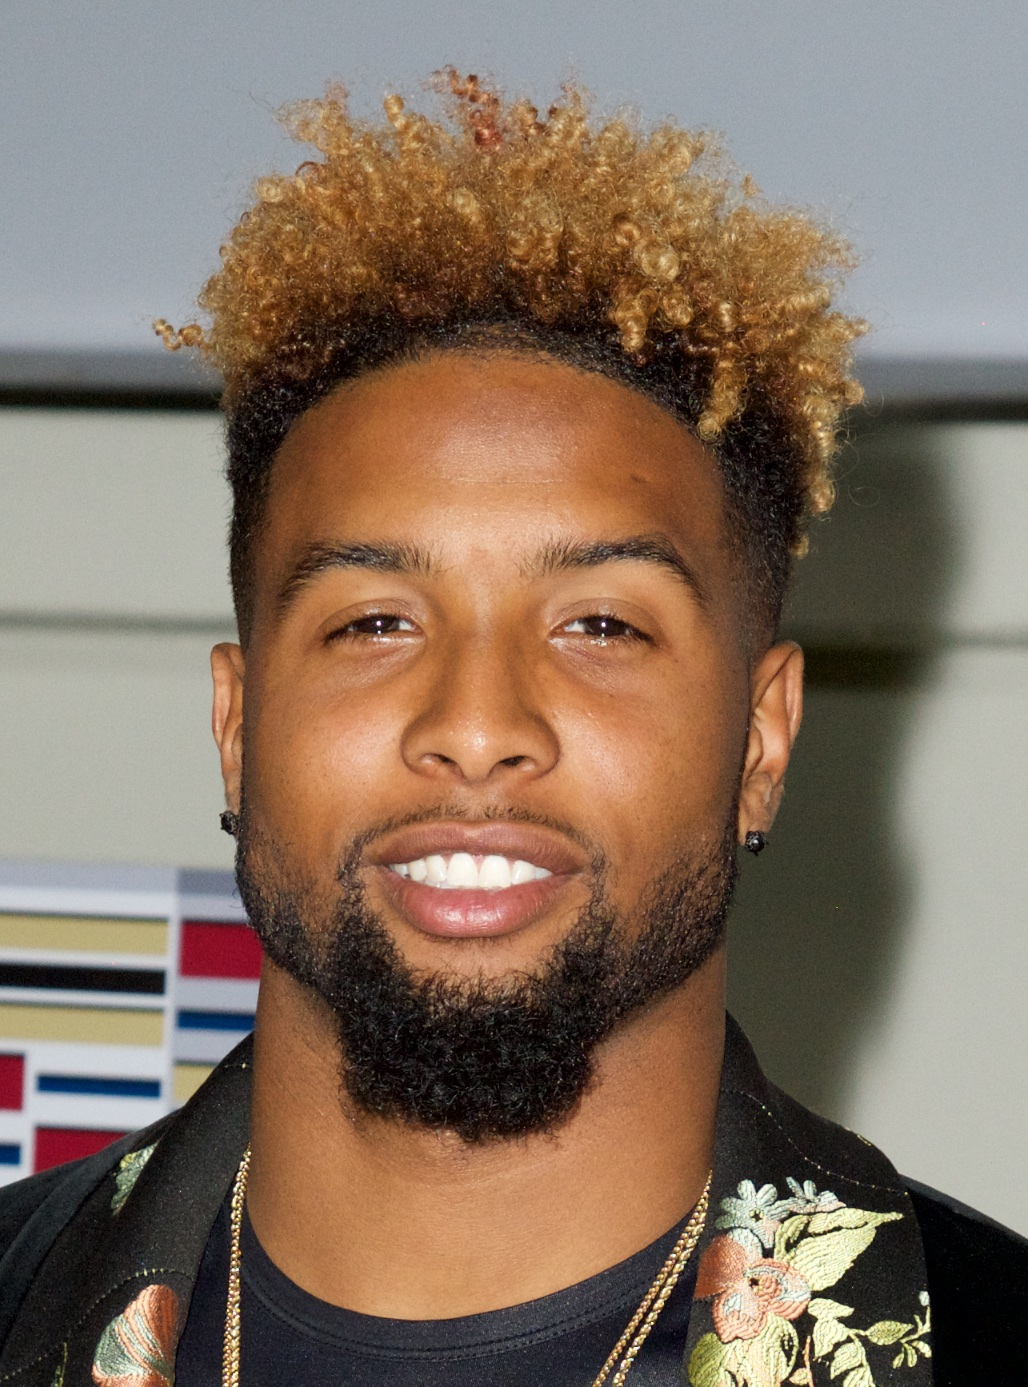 Stormm Styles: Check Out Odell Beckham Jr. Christmas Cleats! | HOT 104 ...: hot1041stl.com/2746490/stormm-styles-check-out-odell-beckham-jr...